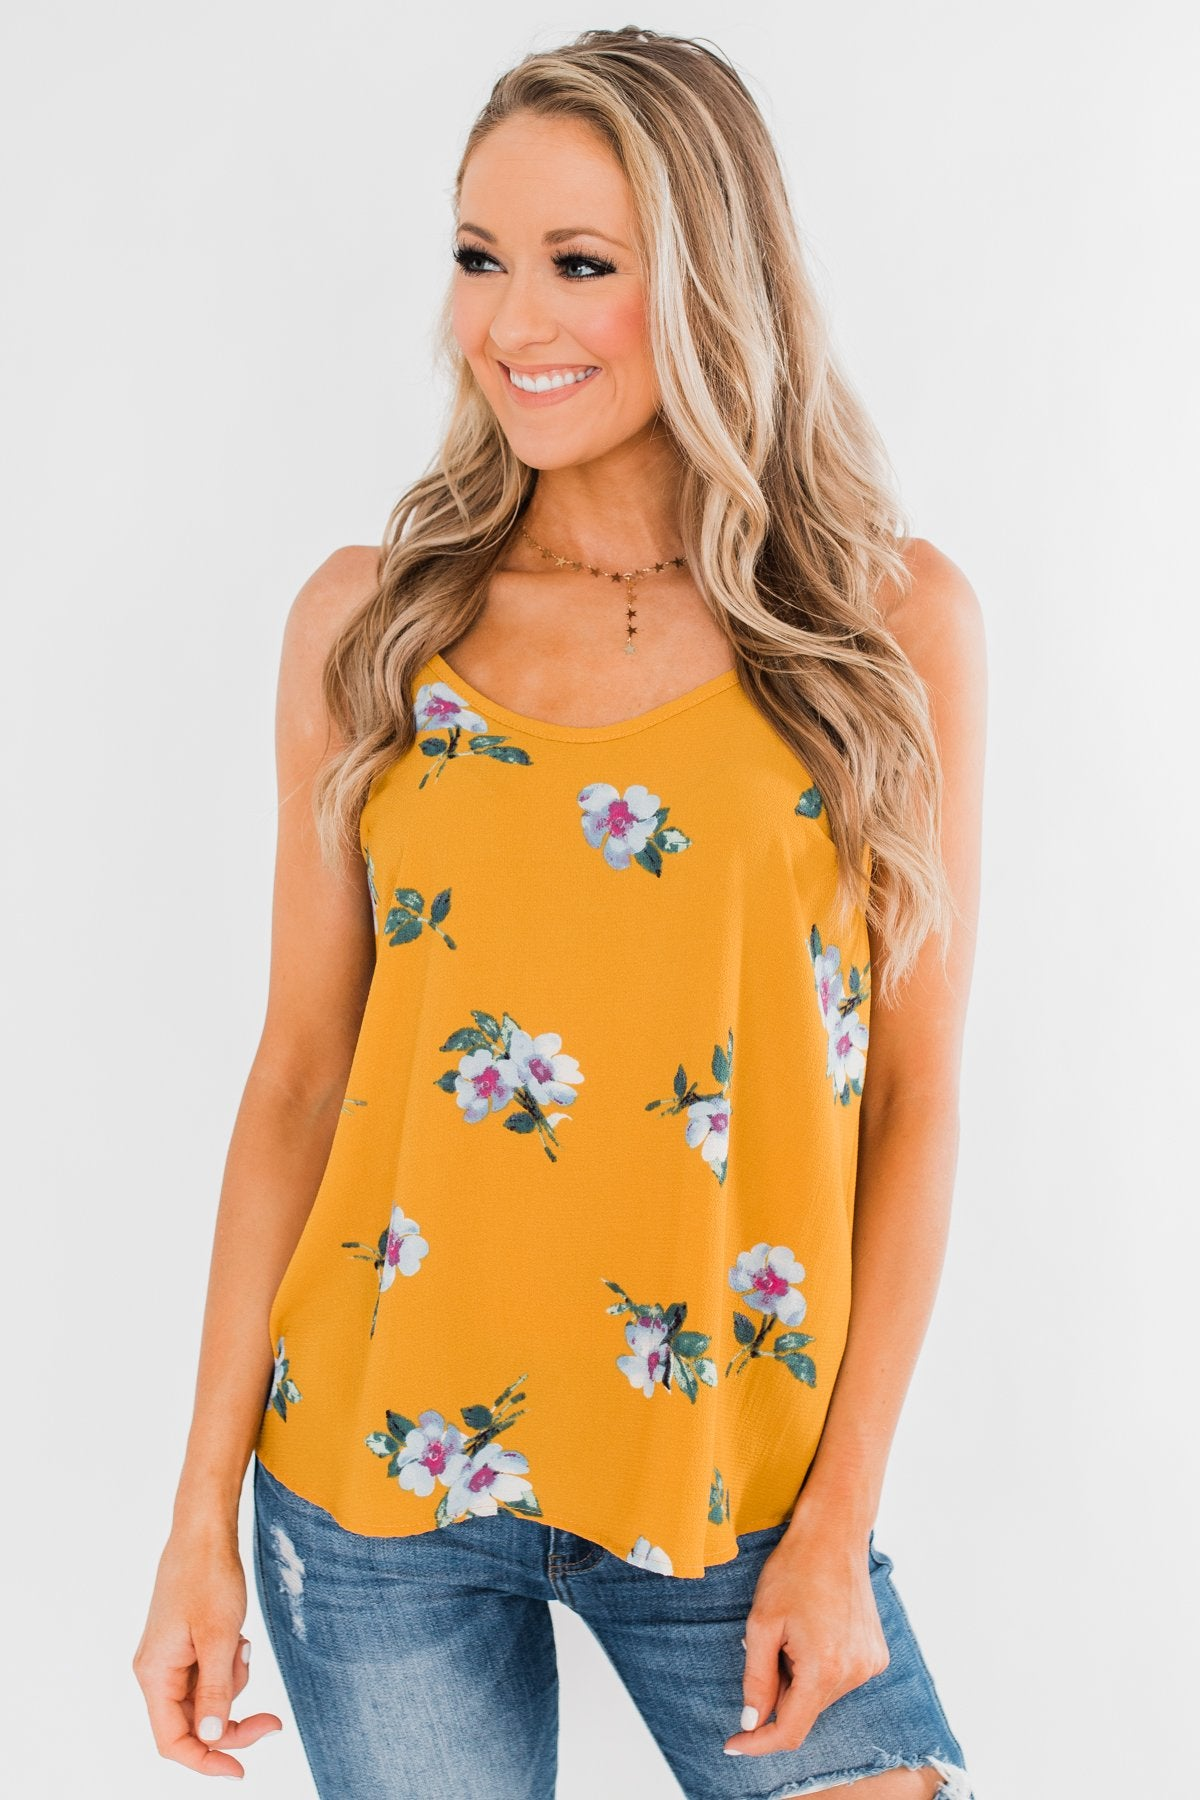 Sure as the Sun Floral Tank Top- Mustard